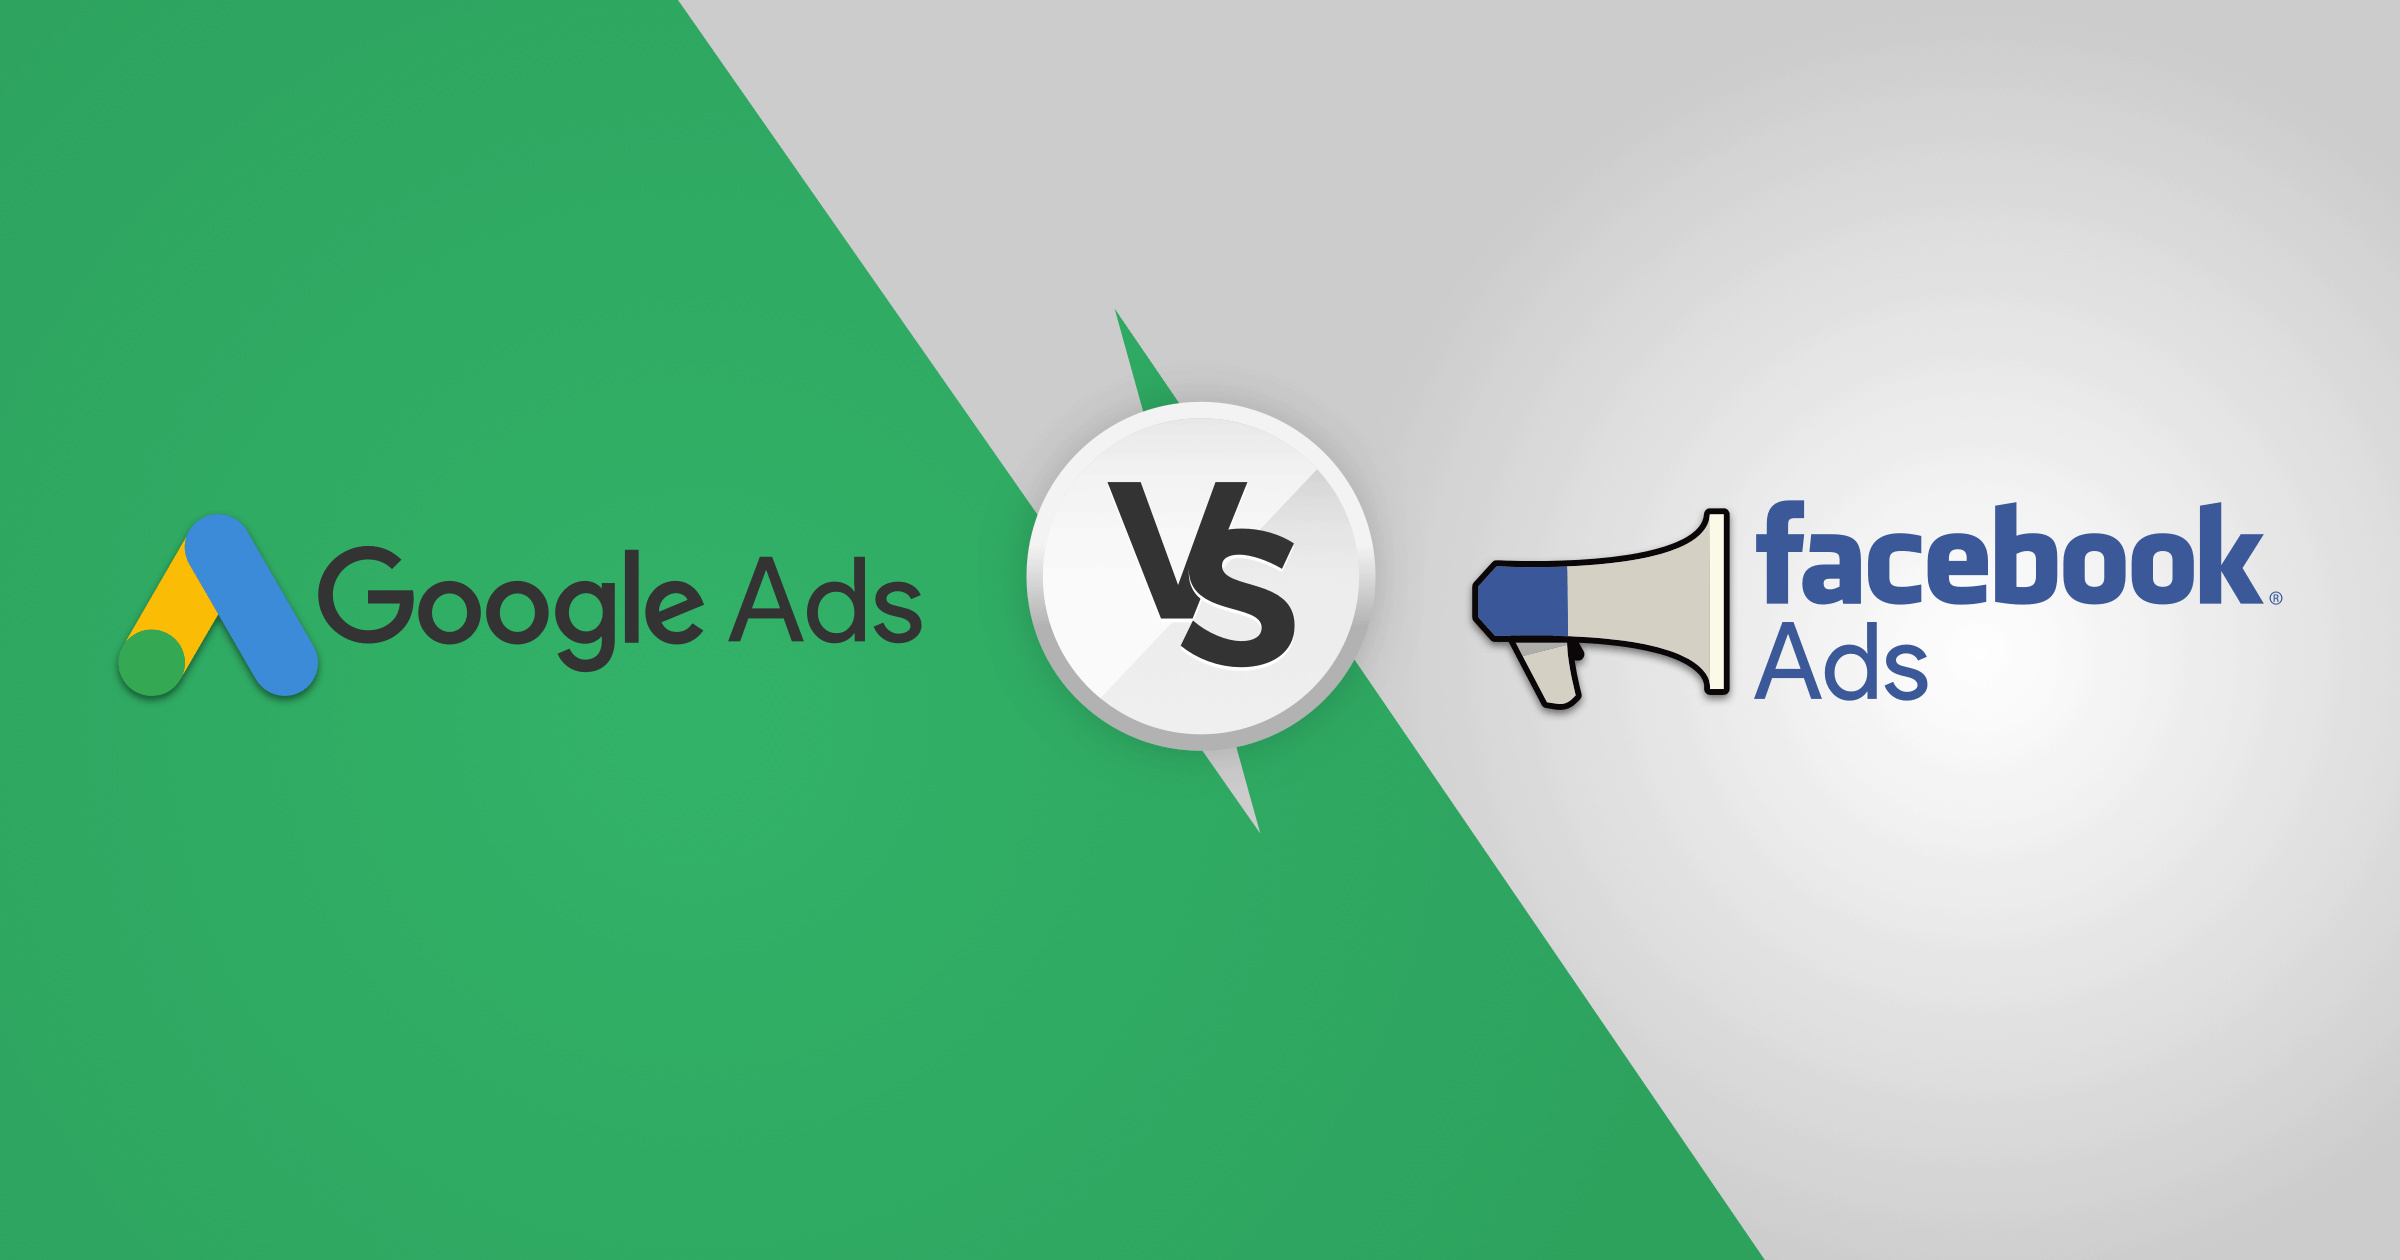 Facebook Ads Versus Google Ads